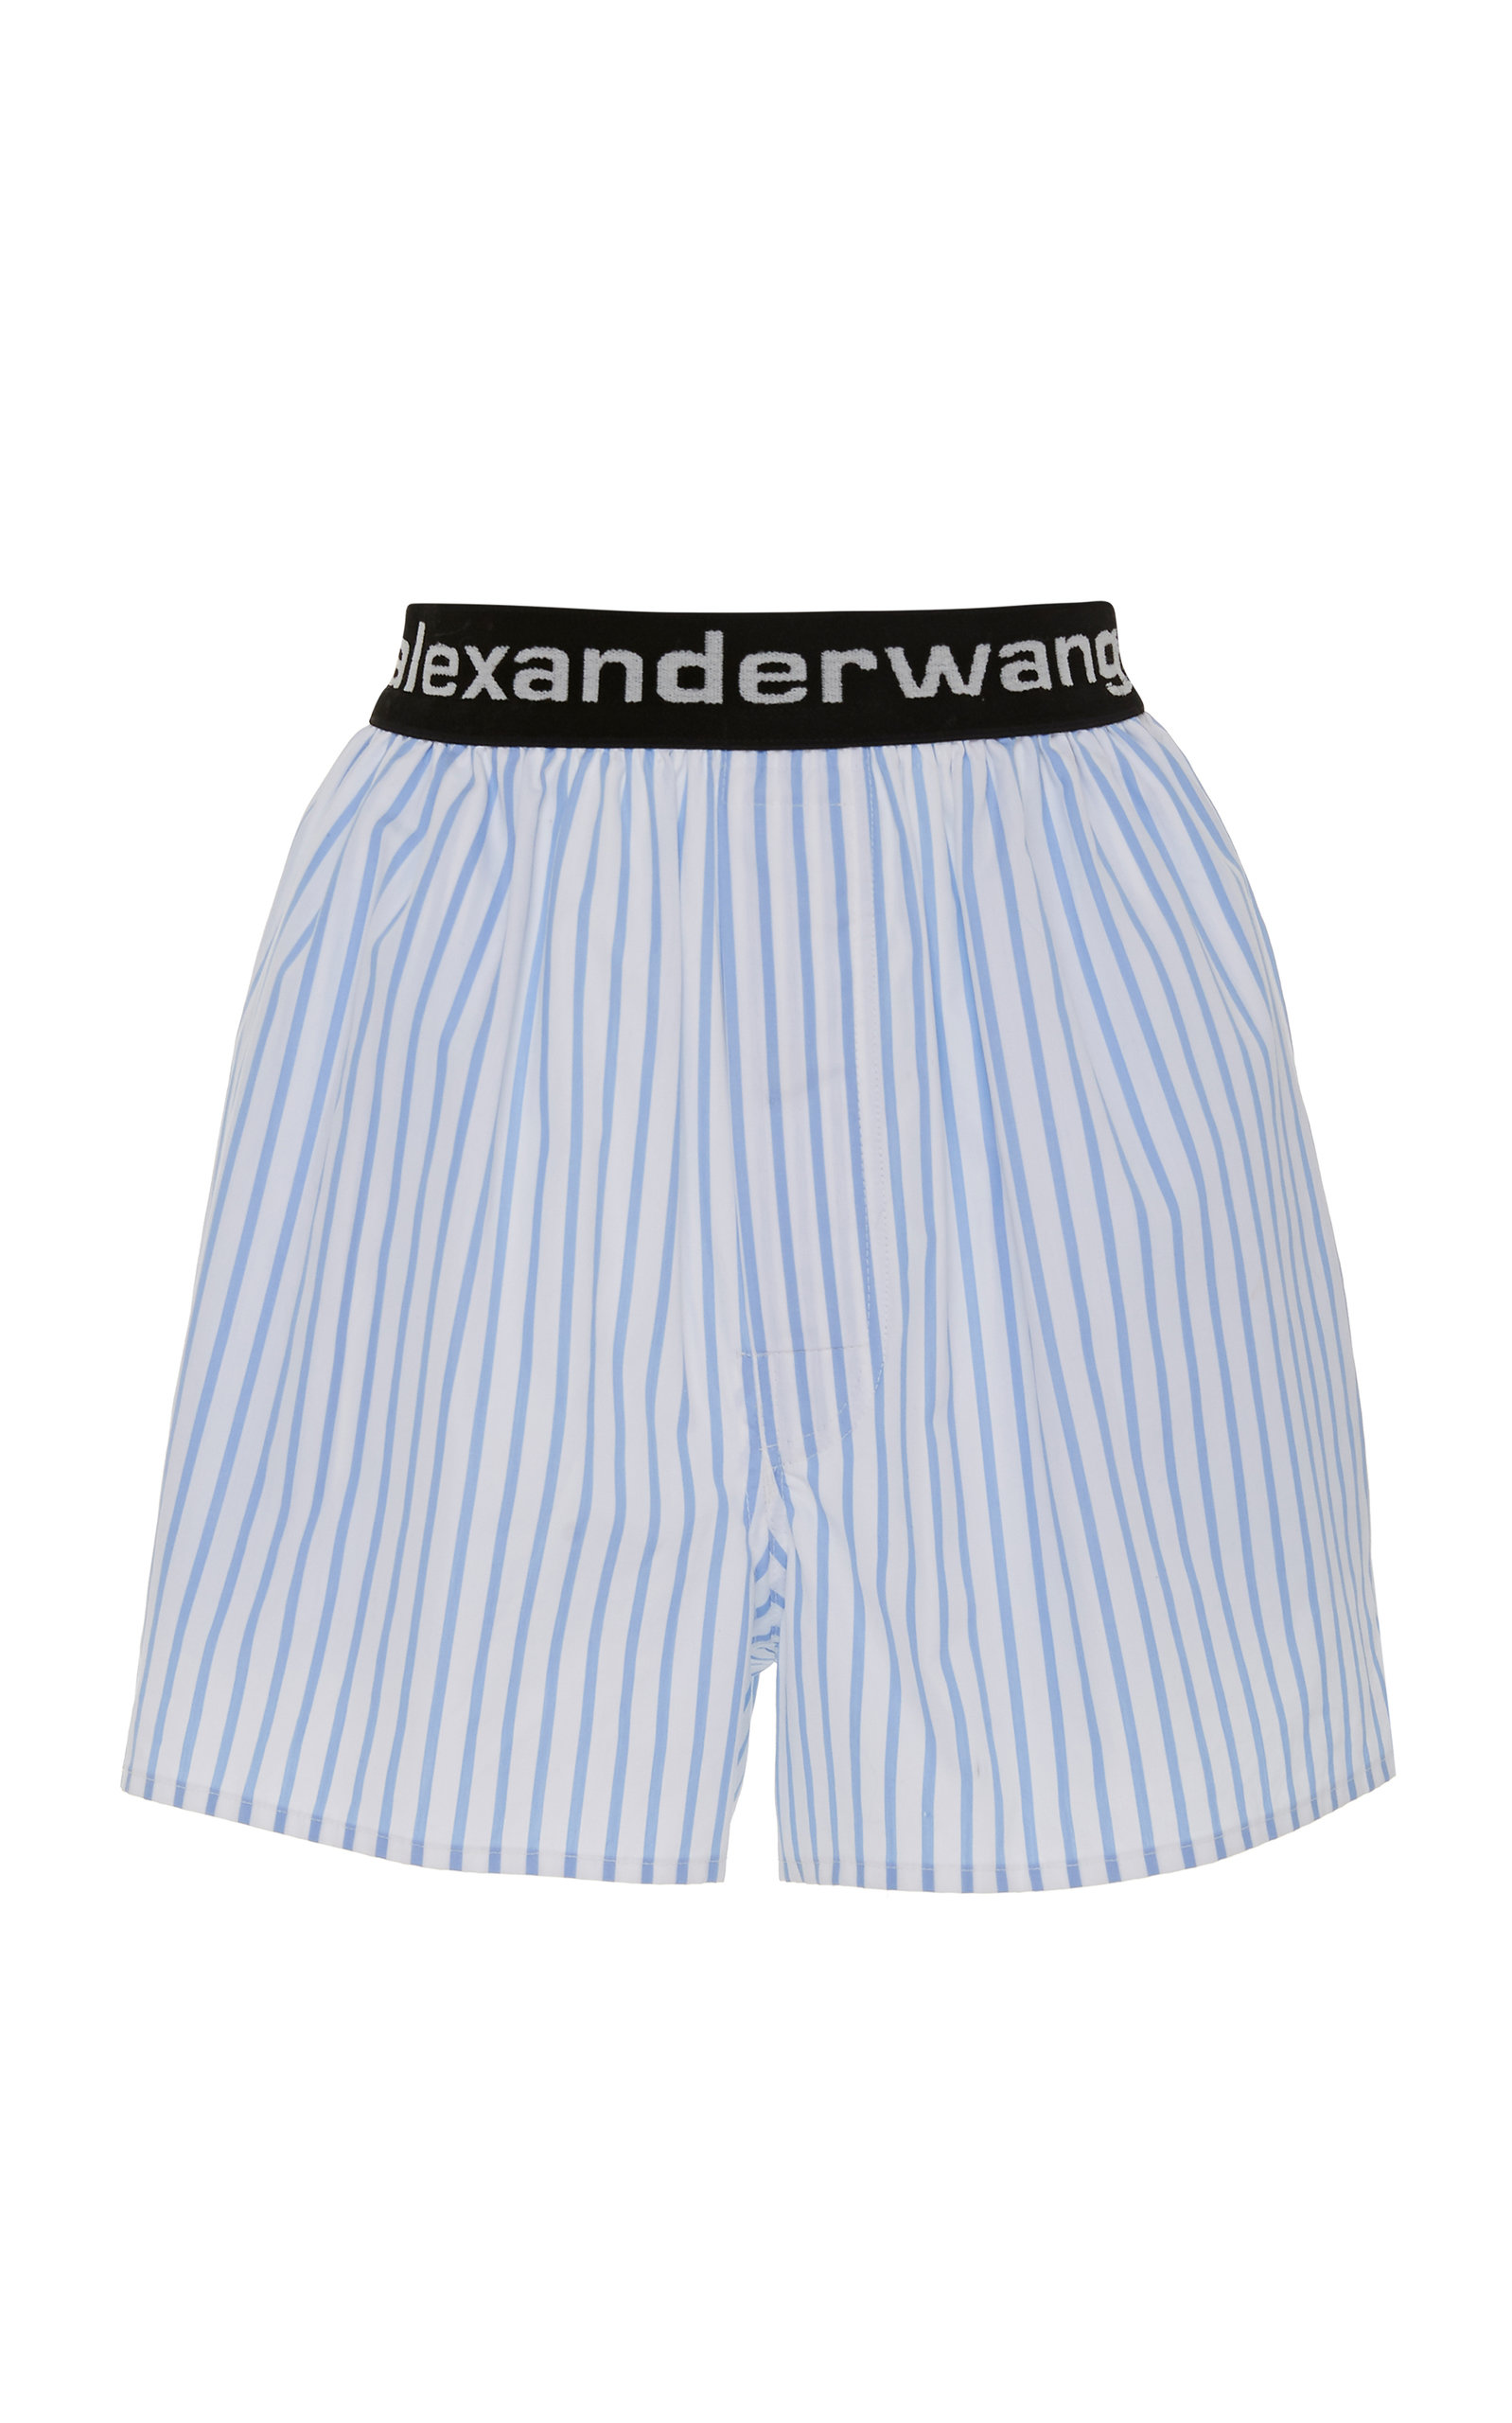 7e29cff113 Logo-Embroidered Striped Cotton-Poplin Shorts by Alexander Wang ...